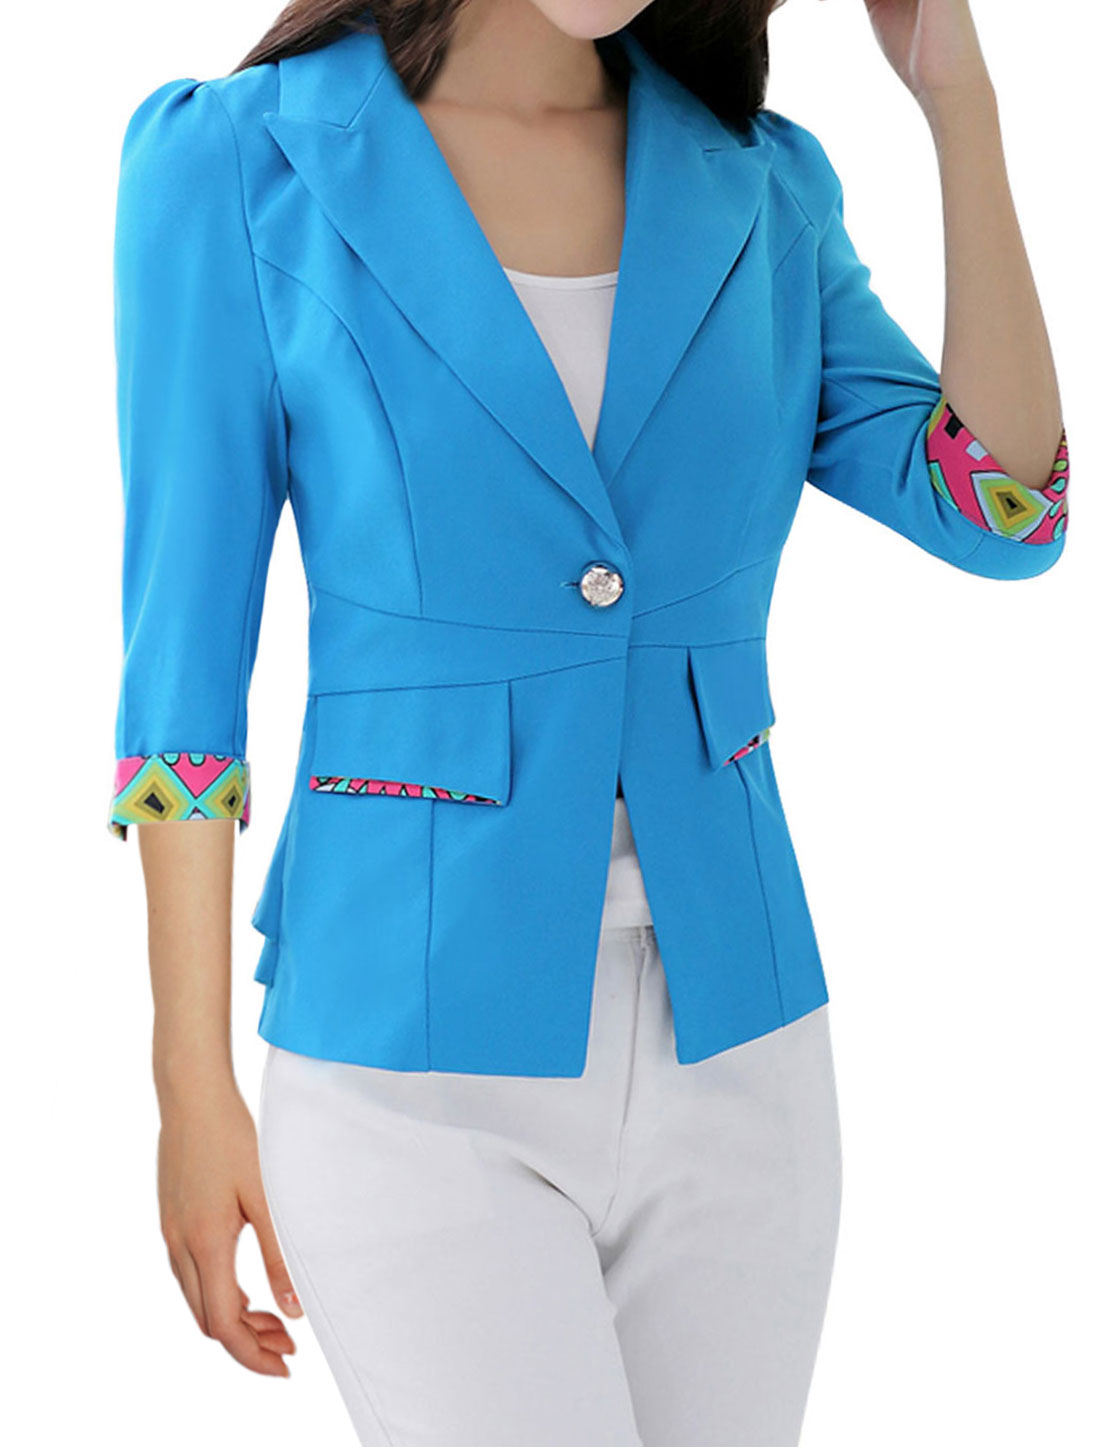 Lady Peaked Lapel Roll-up Cuffs Slim Fit Blue Blazer Jacket L